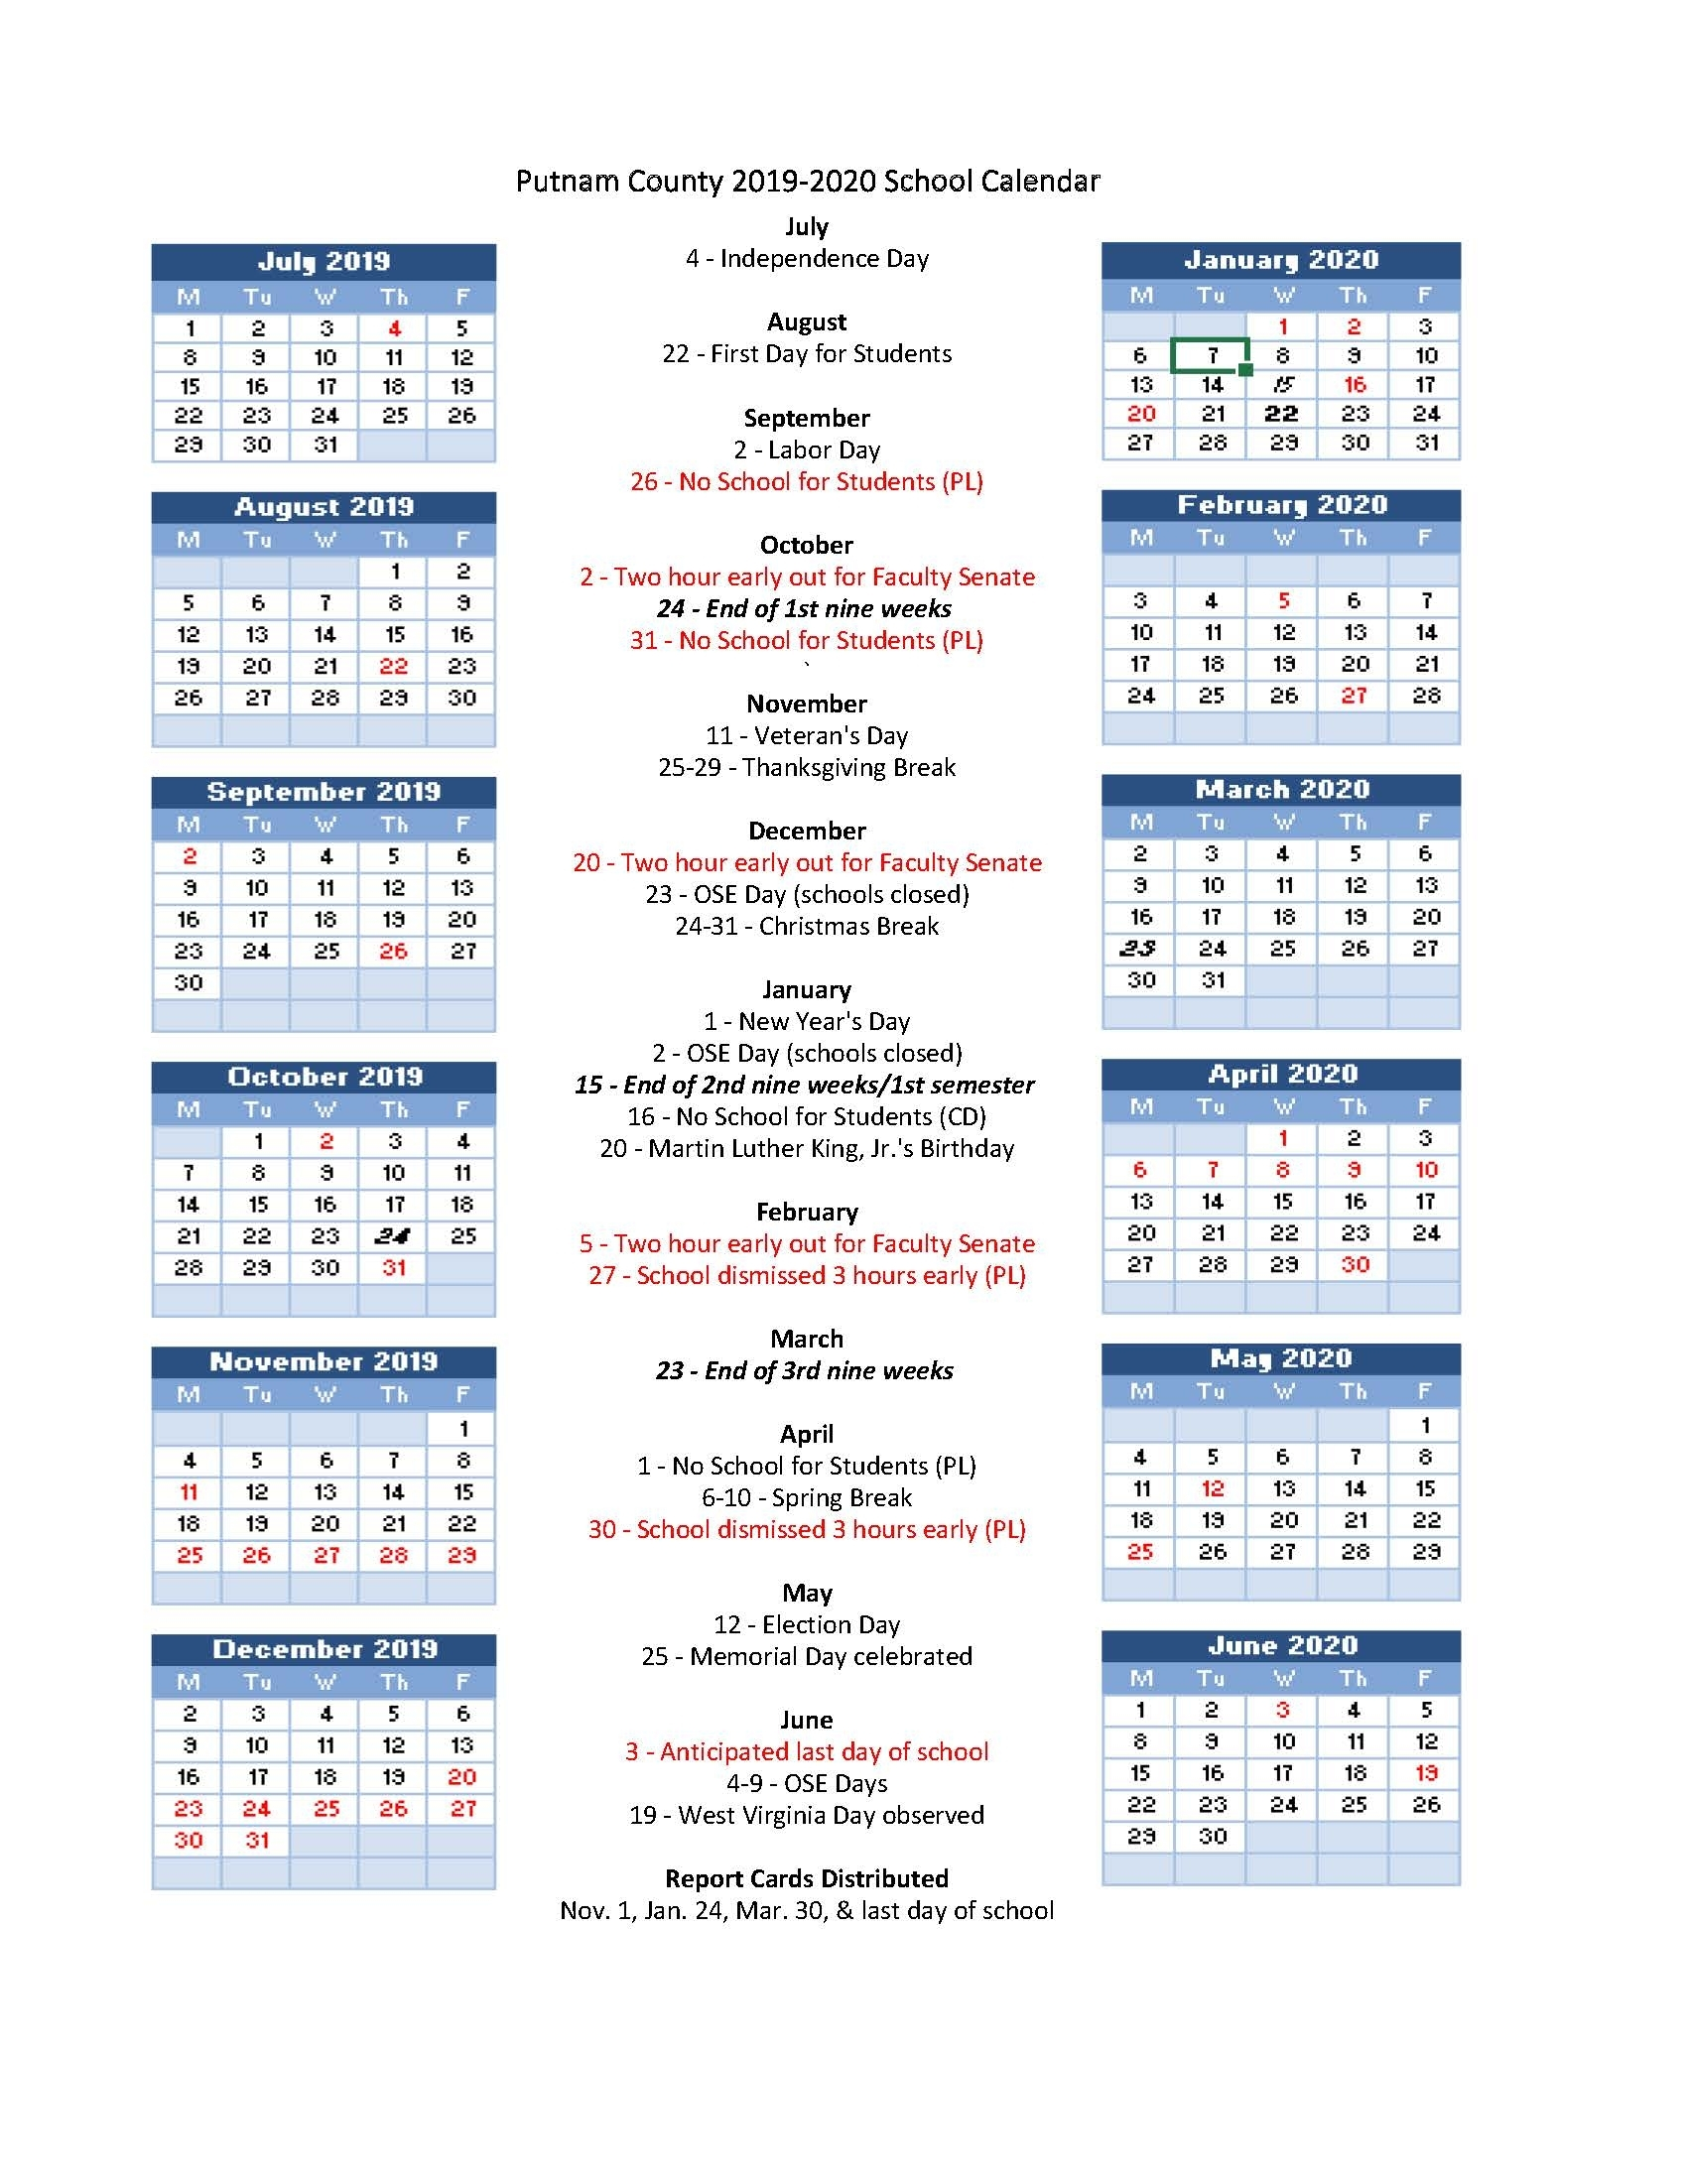 Pcs 2019-2020 School Calendar Highlights - Putnam County Schools throughout Virginia Tech Calendar 2019-2020